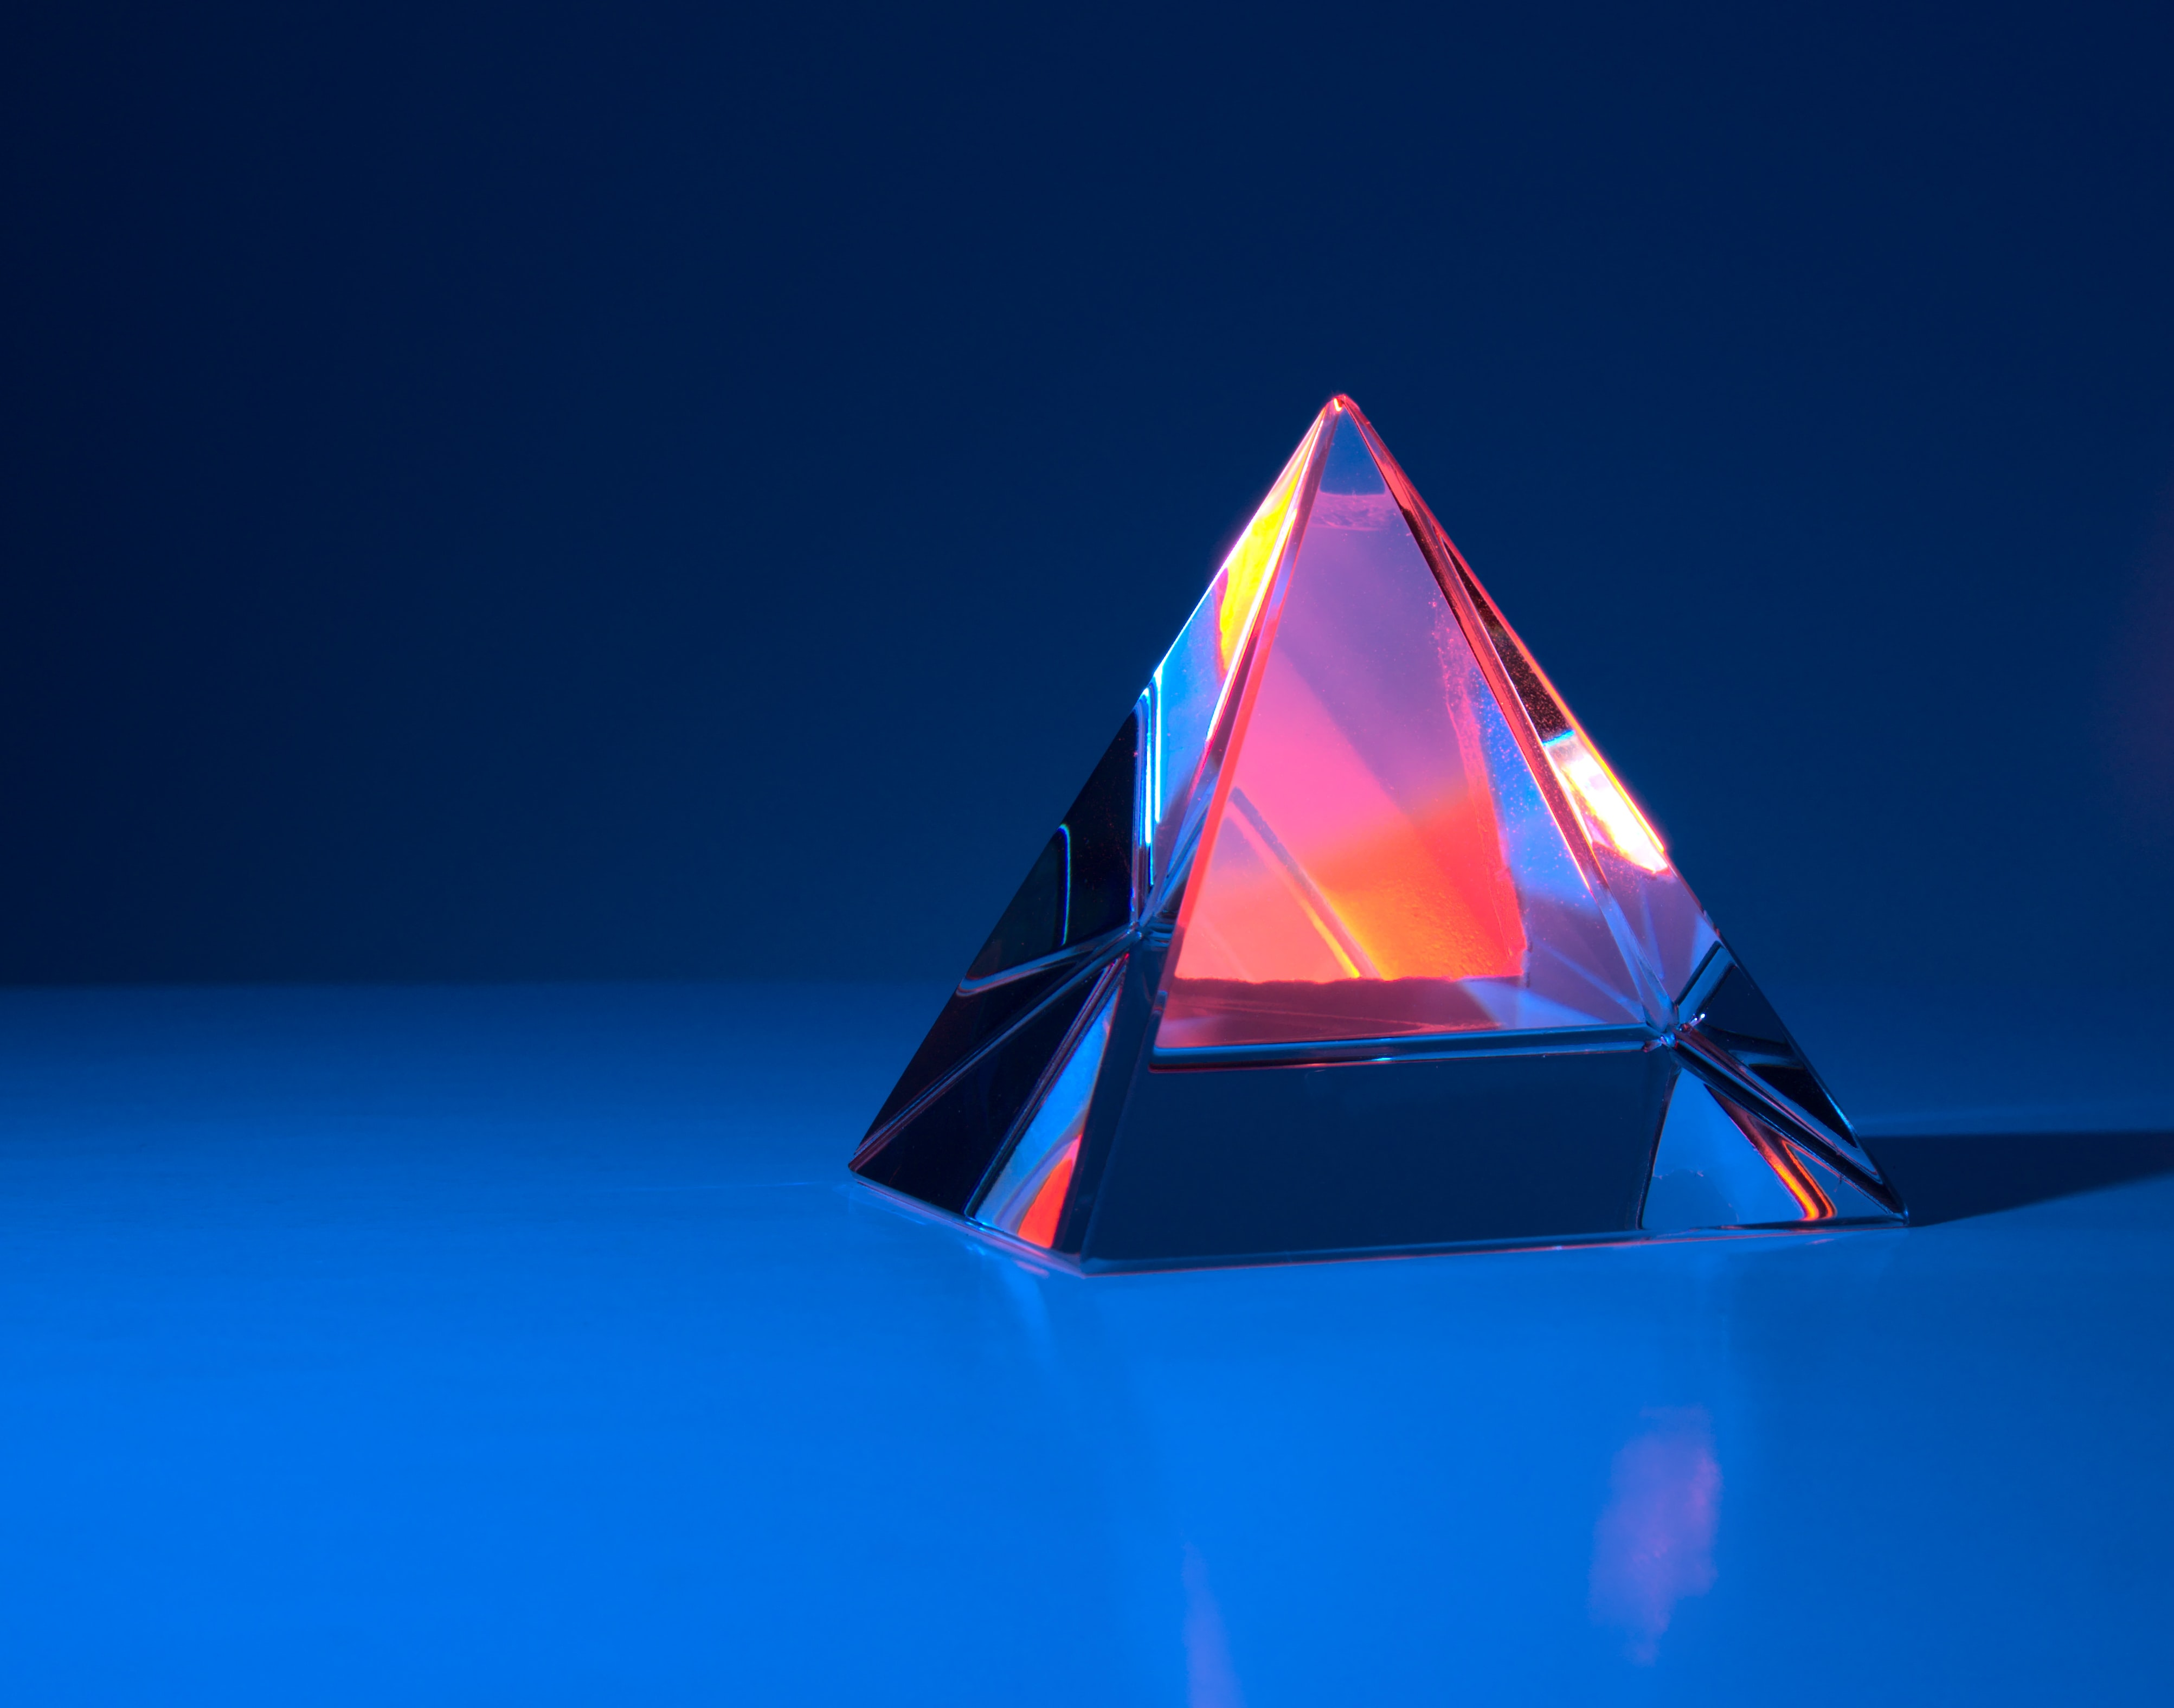 Four sided glass pyramid with beautiful light effects